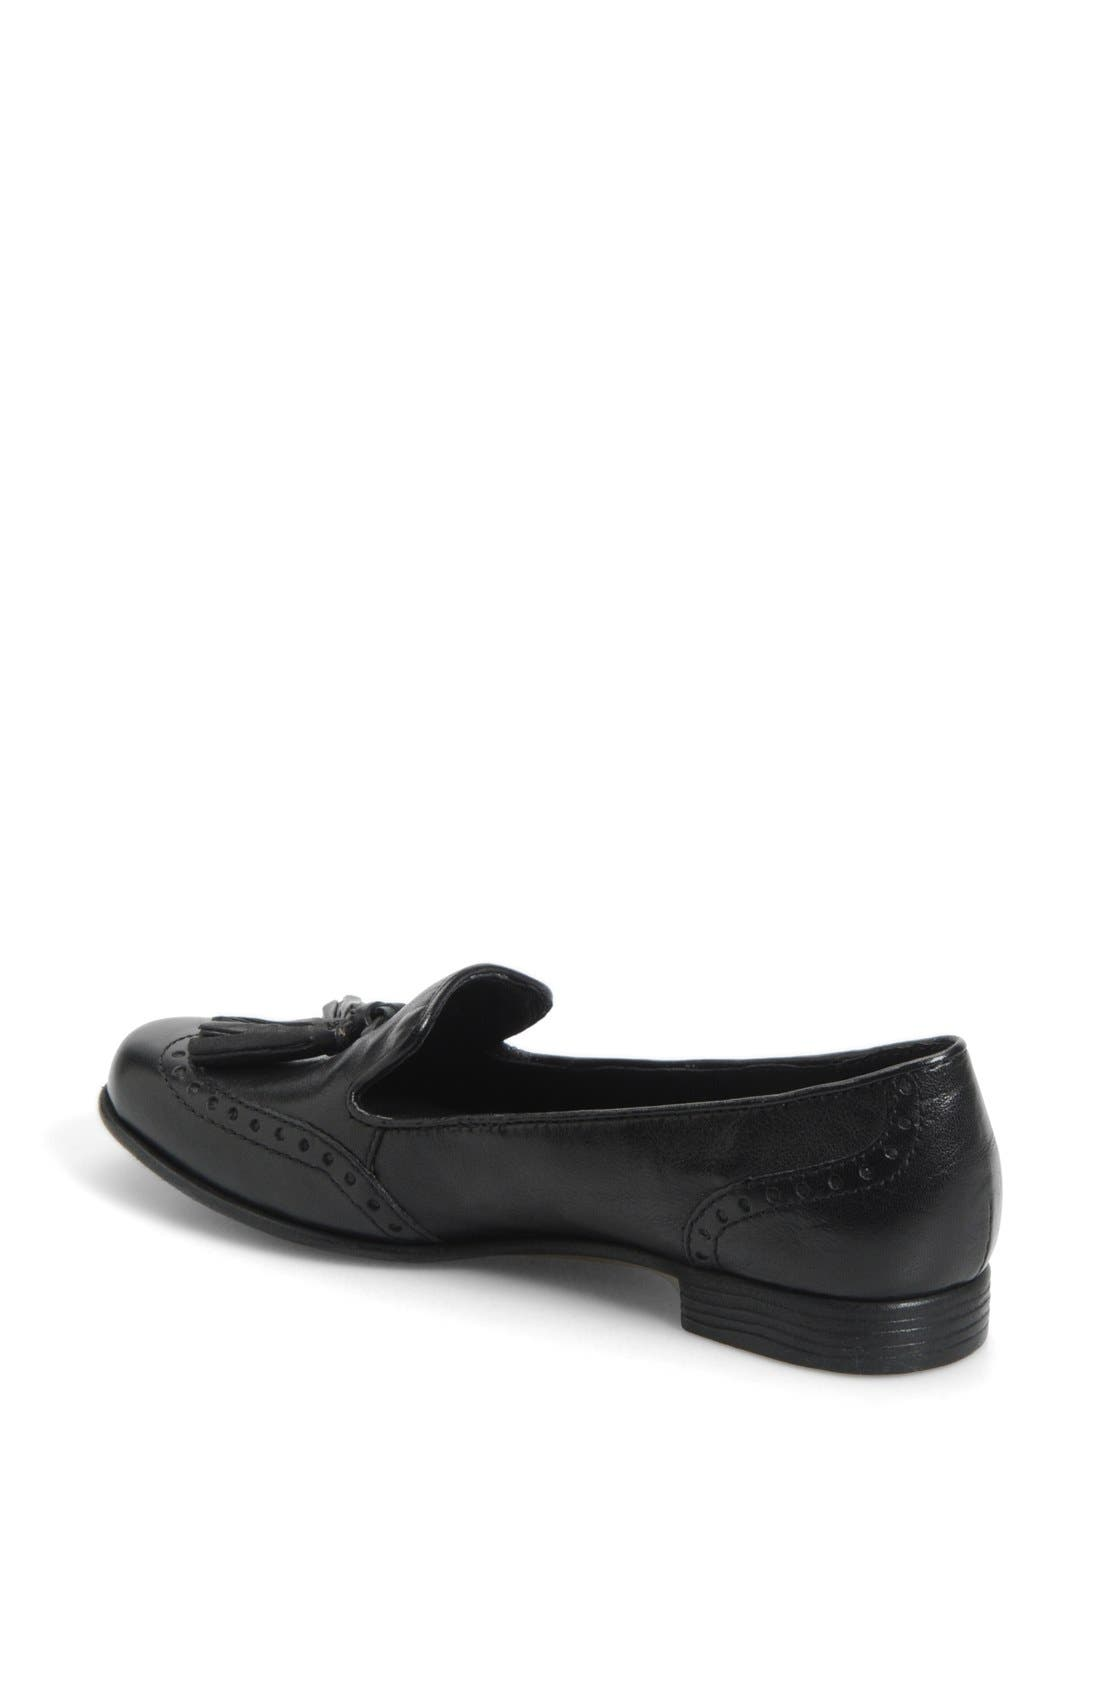 Alternate Image 2  - Børn 'Charmaine' Brogue Loafer